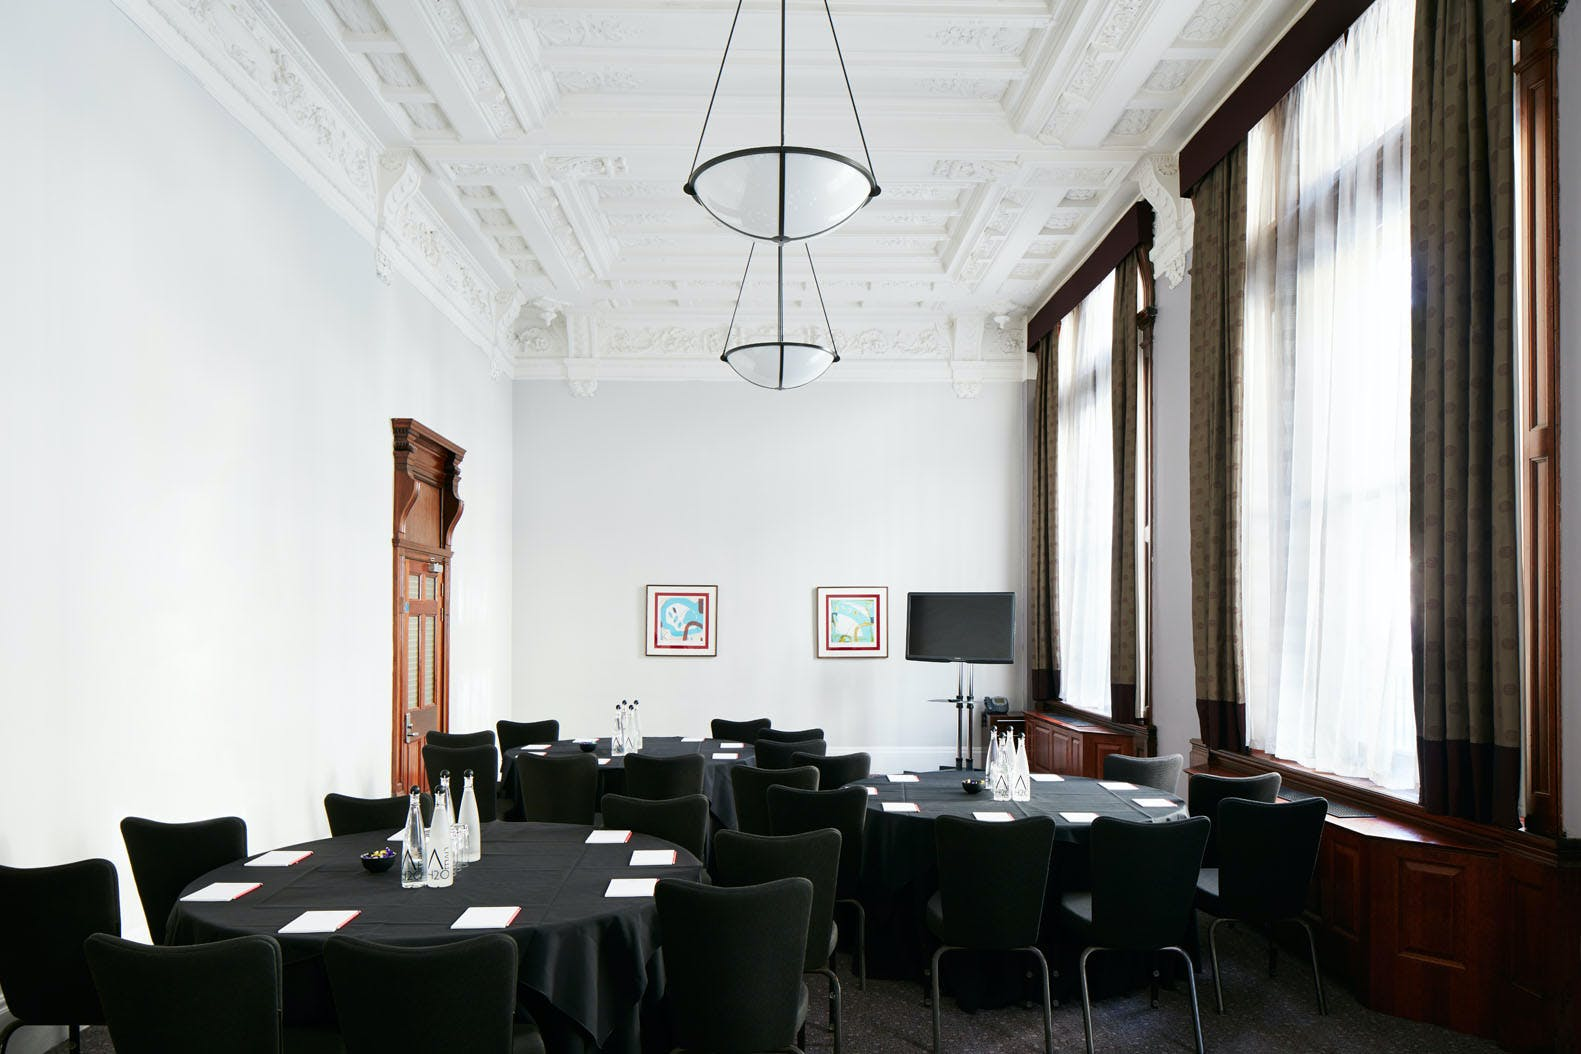 Meeting & Events Spaces at Club Quarters Hotel, Trafalgar Square, London